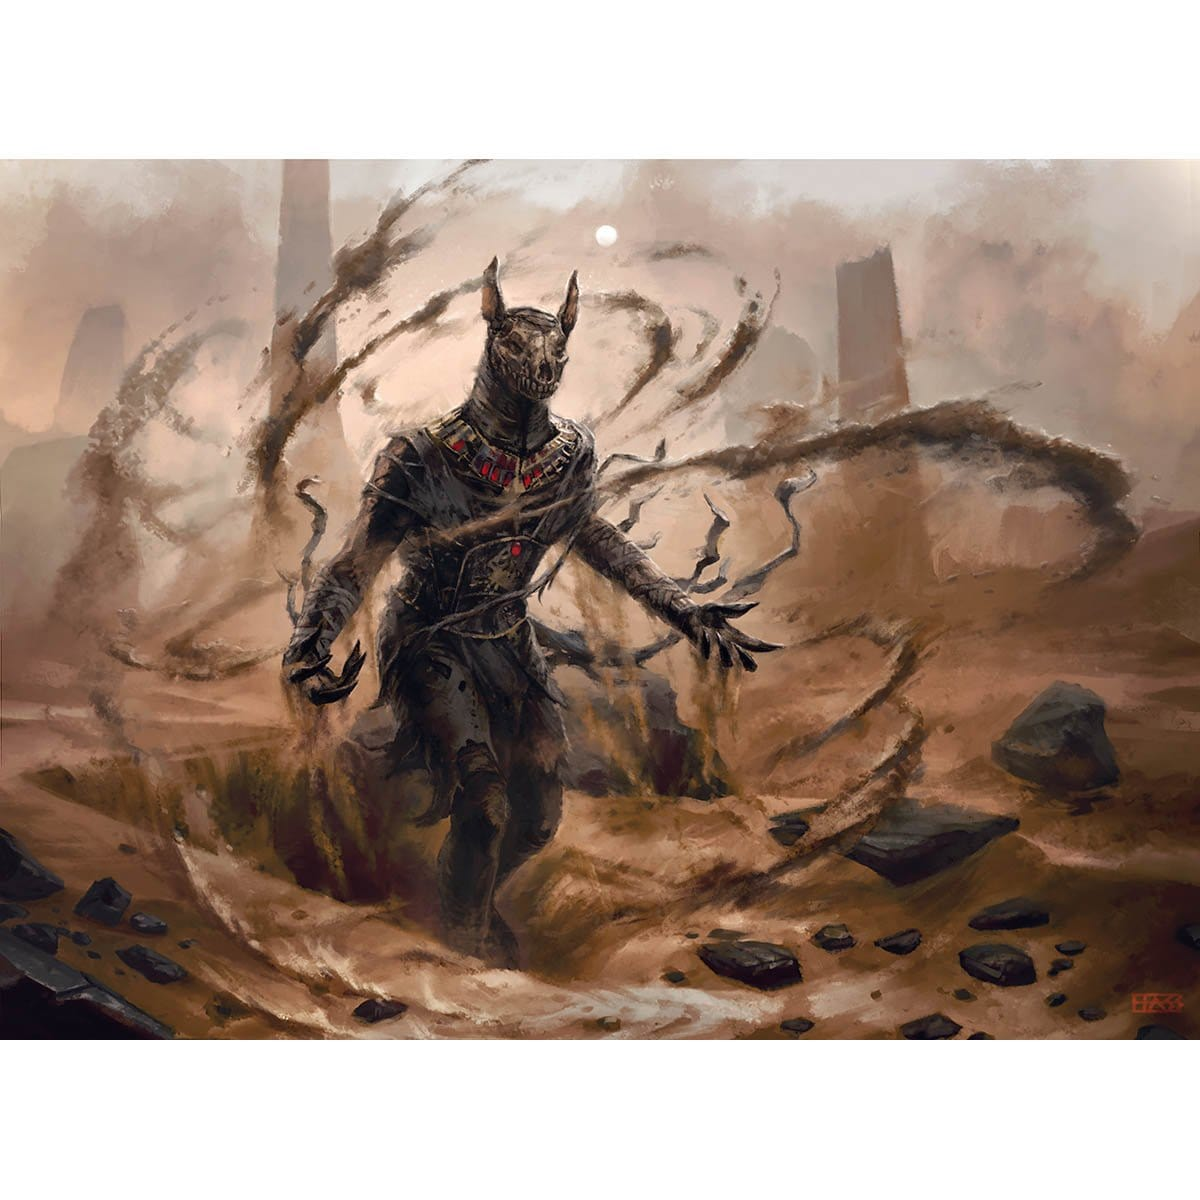 Dread Wanderer Print - Print - Original Magic Art - Accessories for Magic the Gathering and other card games